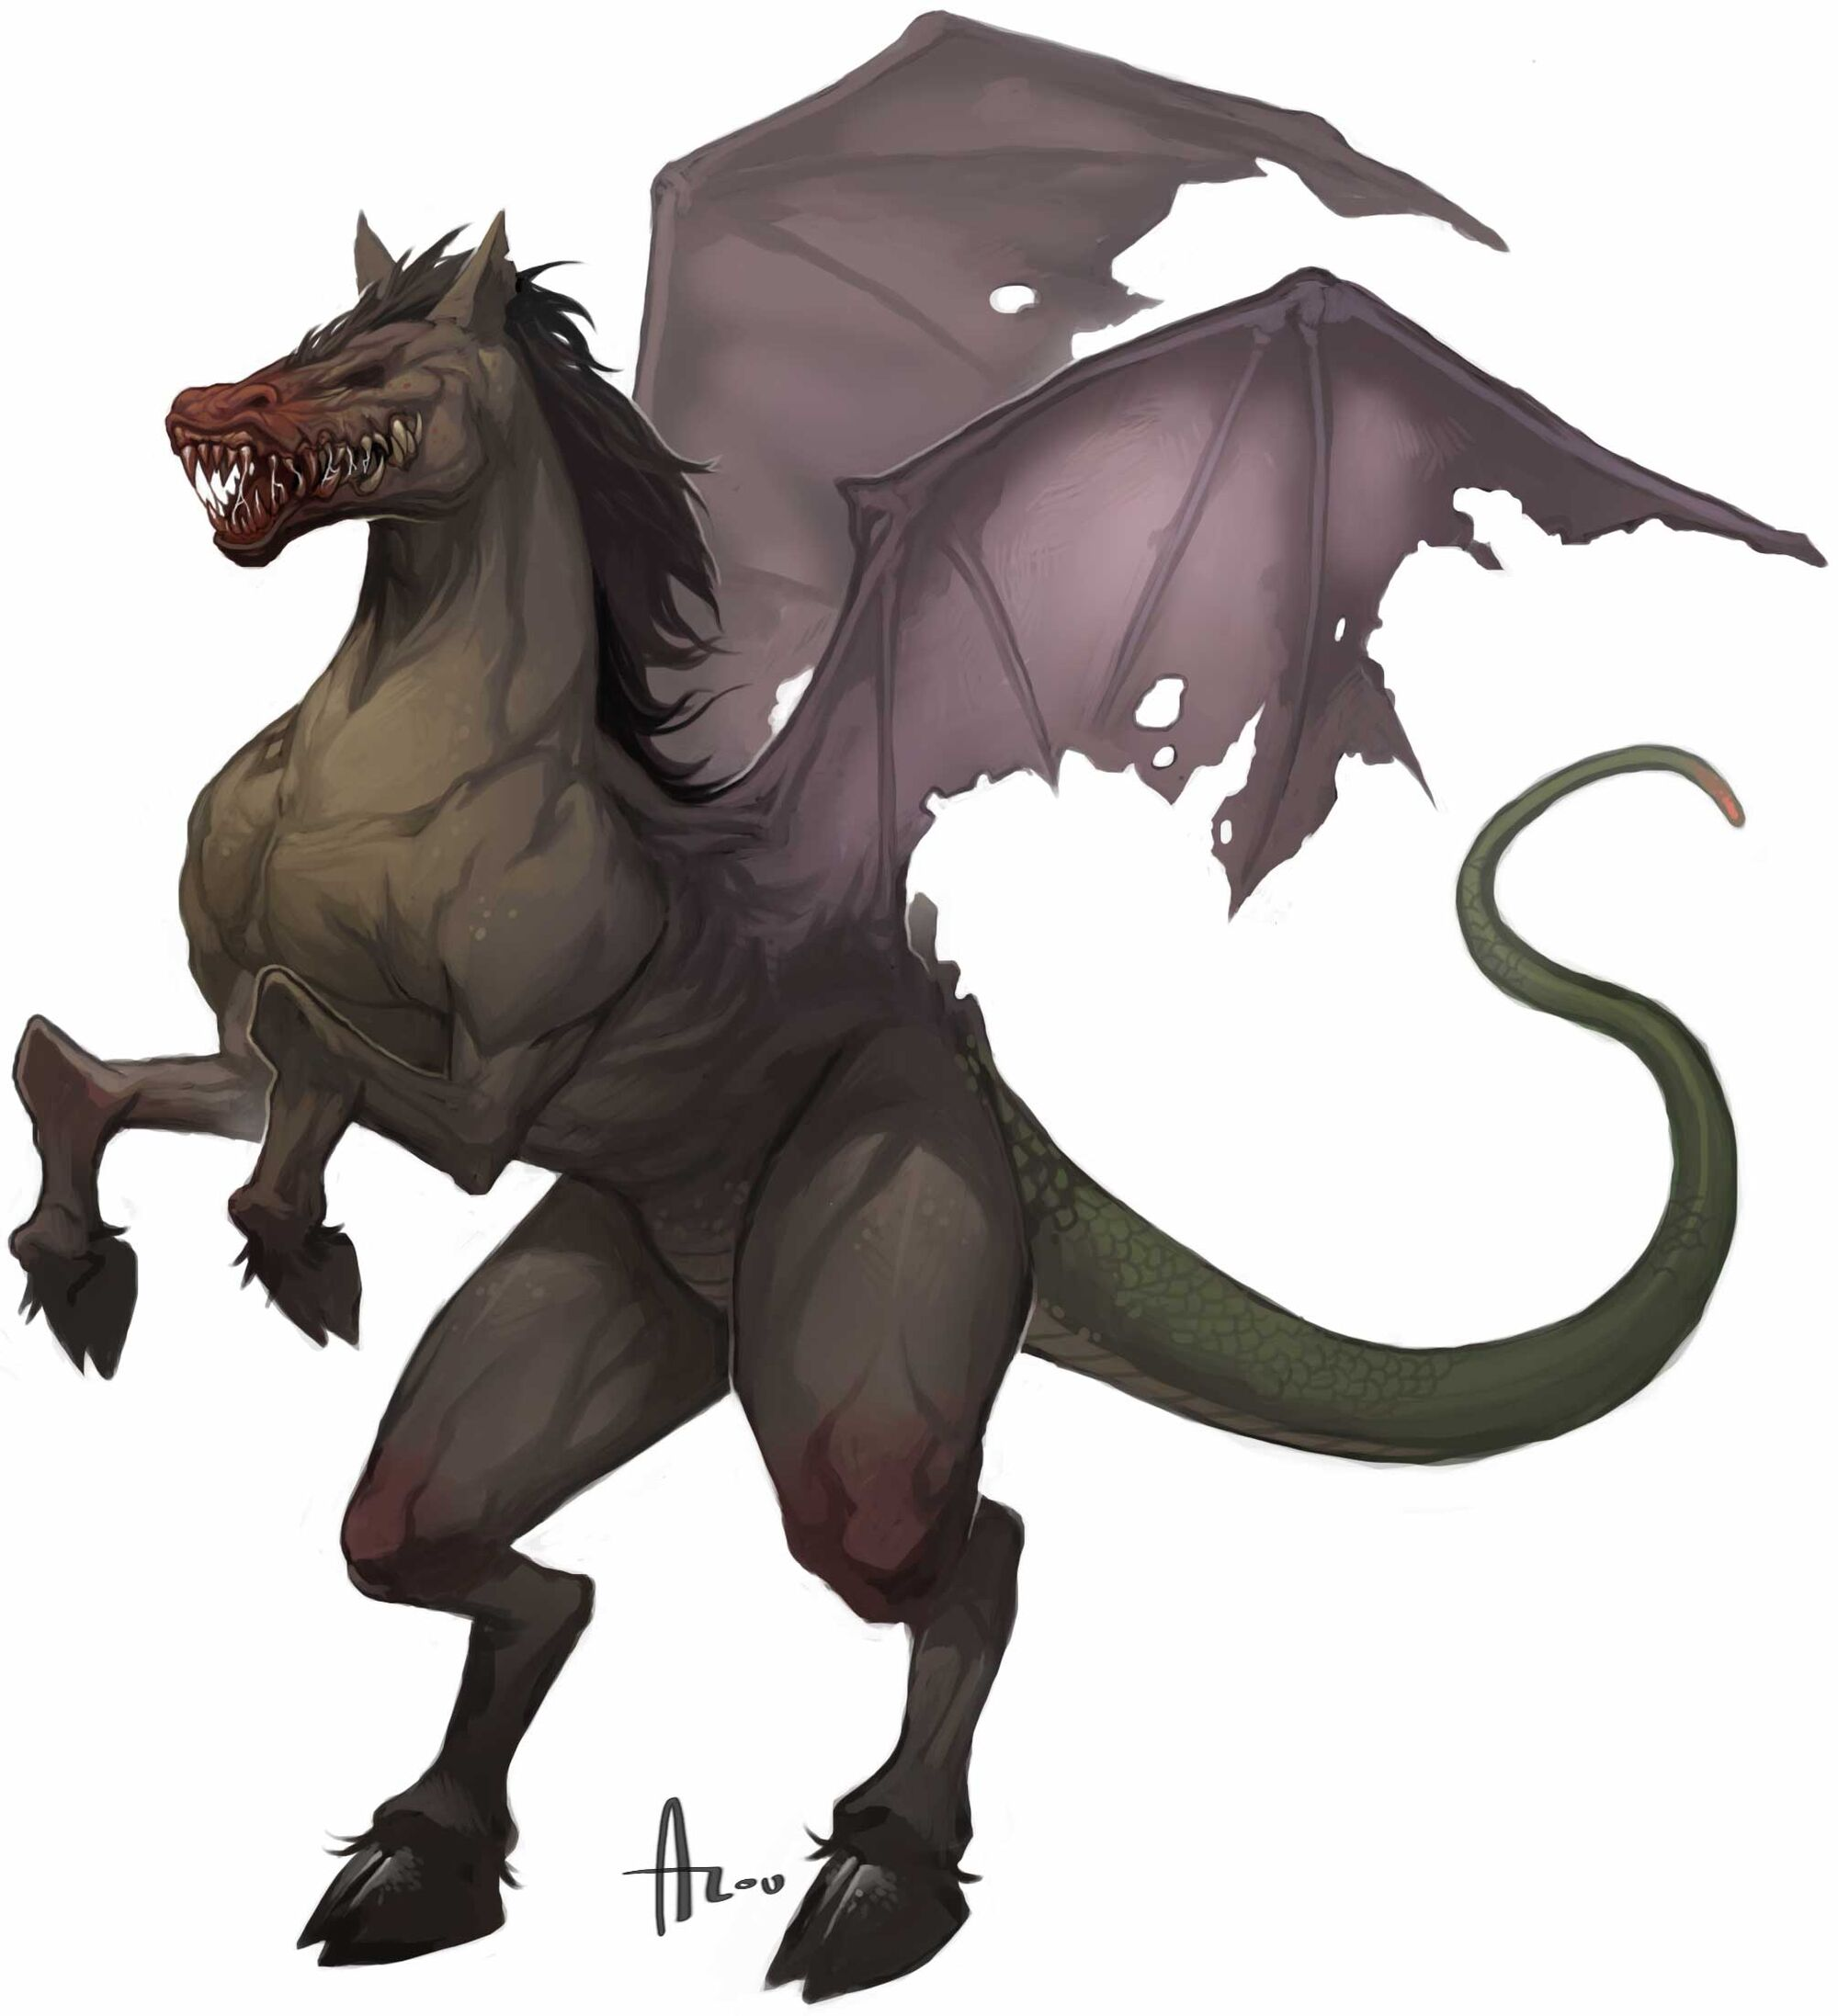 Sandpoint devil | Pathfinder Wiki | FANDOM powered by Wikia